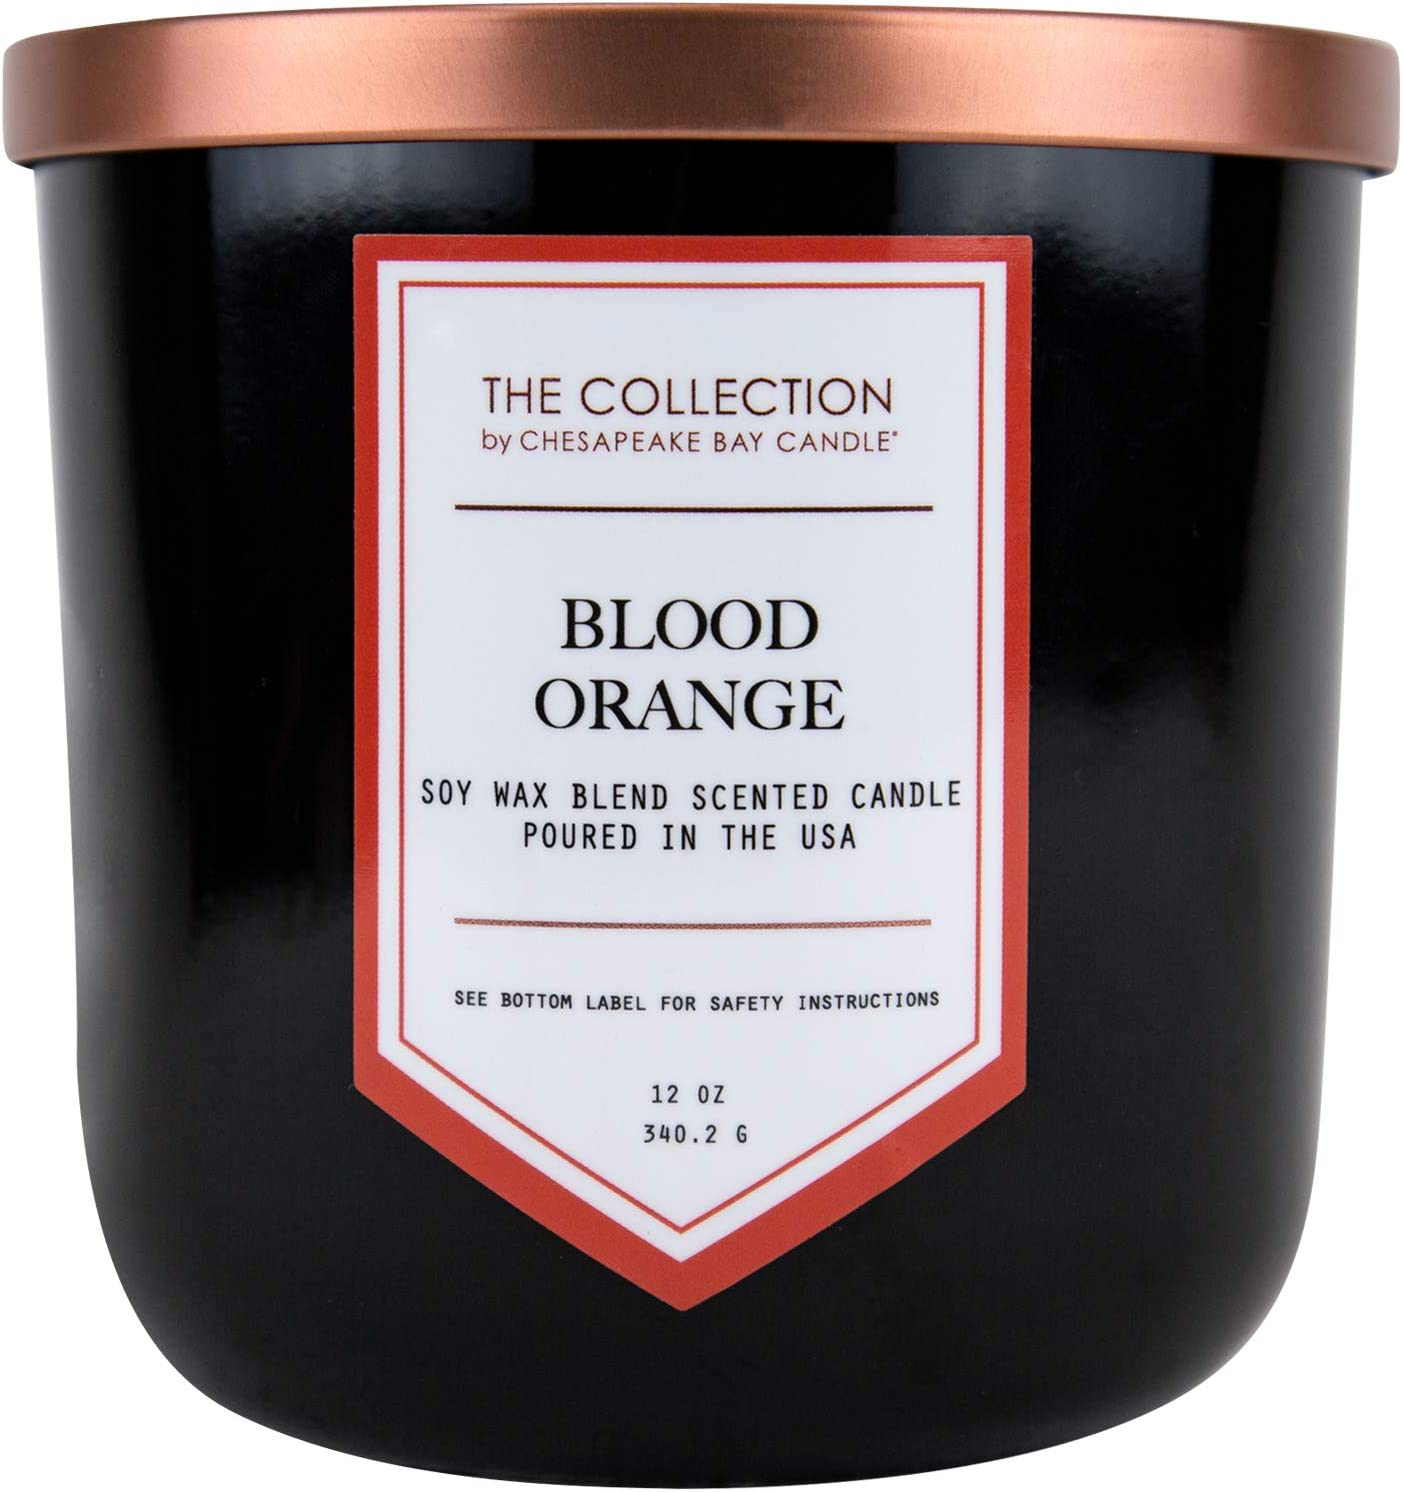 Chesapeake Bay Candle TA35216 Candle The Collection Two-Wick Scented Candle, Blood Orange